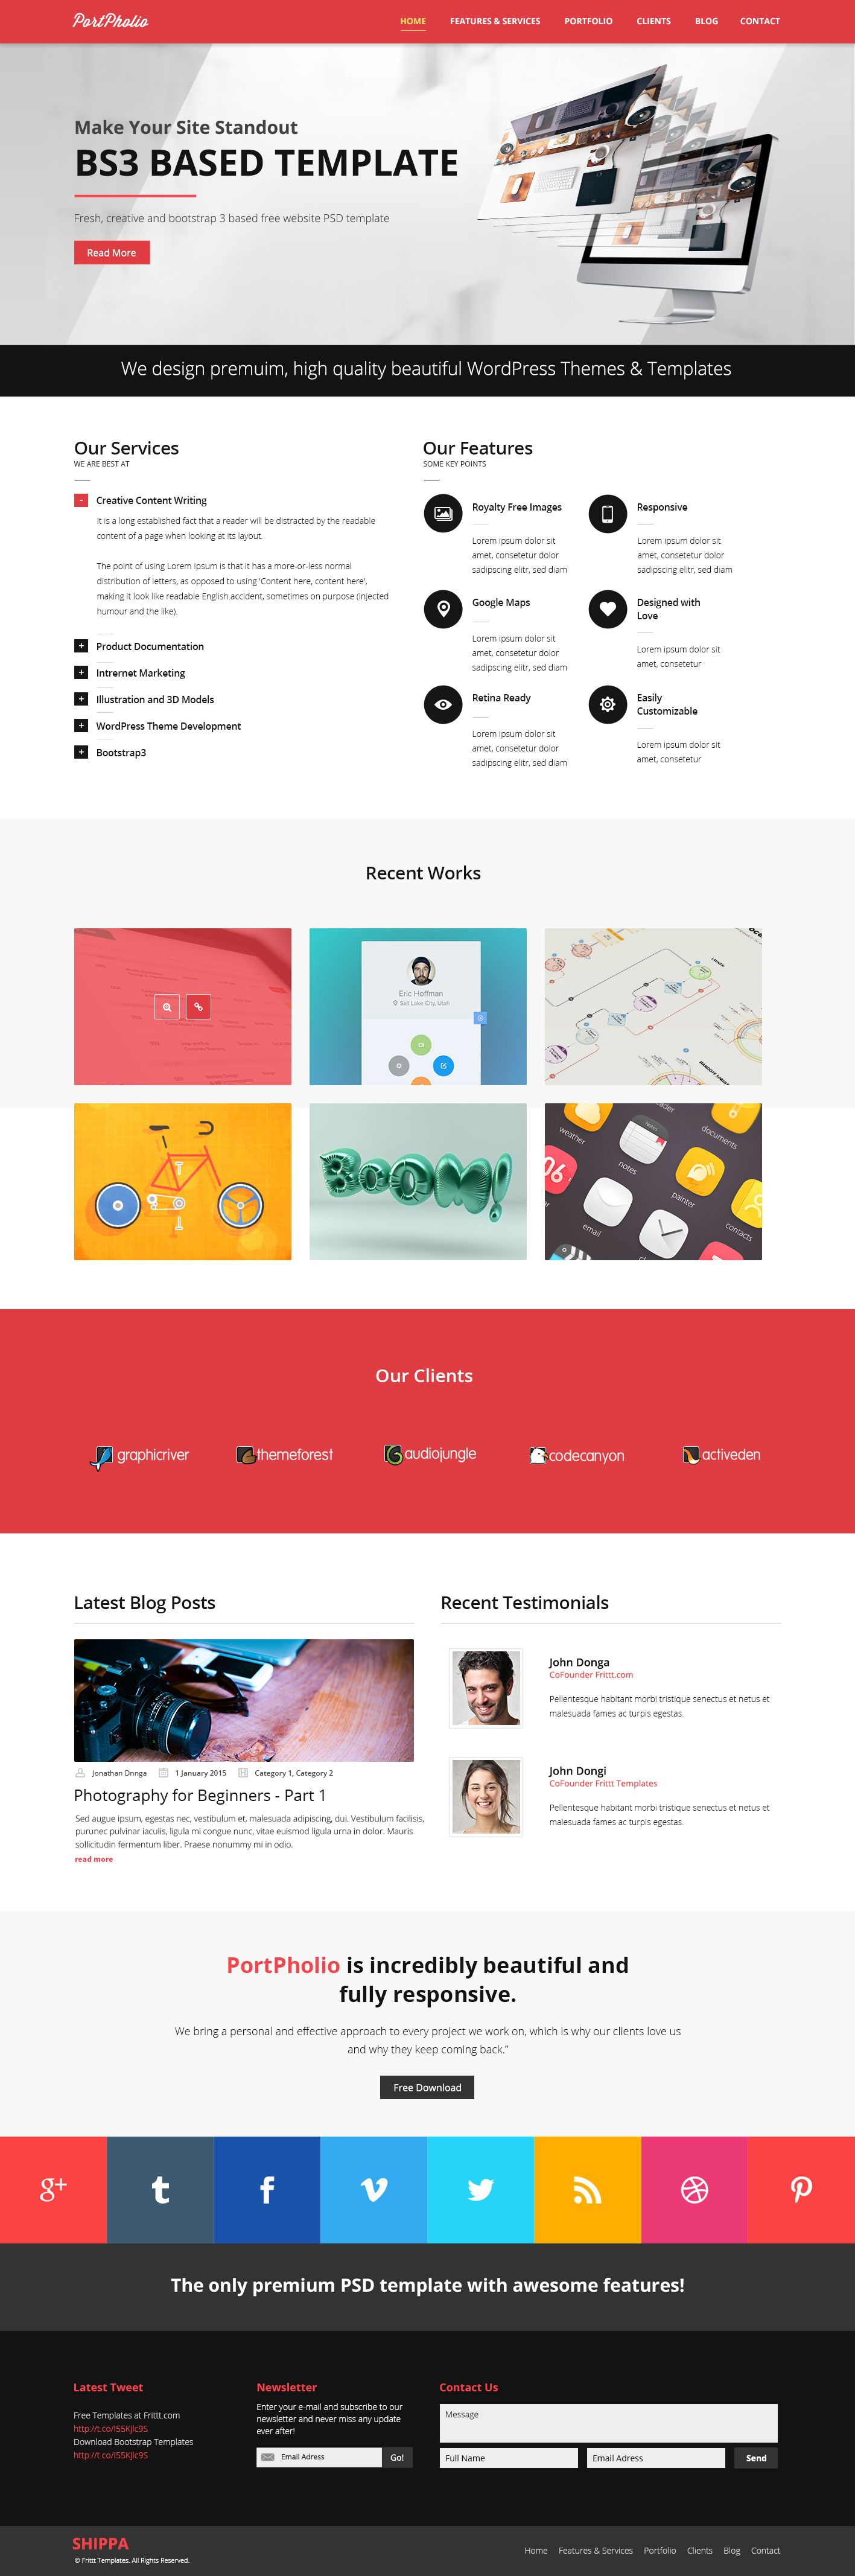 004 Breathtaking Single Page Web Template Inspiration  Templates One Website Free Download Html5 BootstrapFull